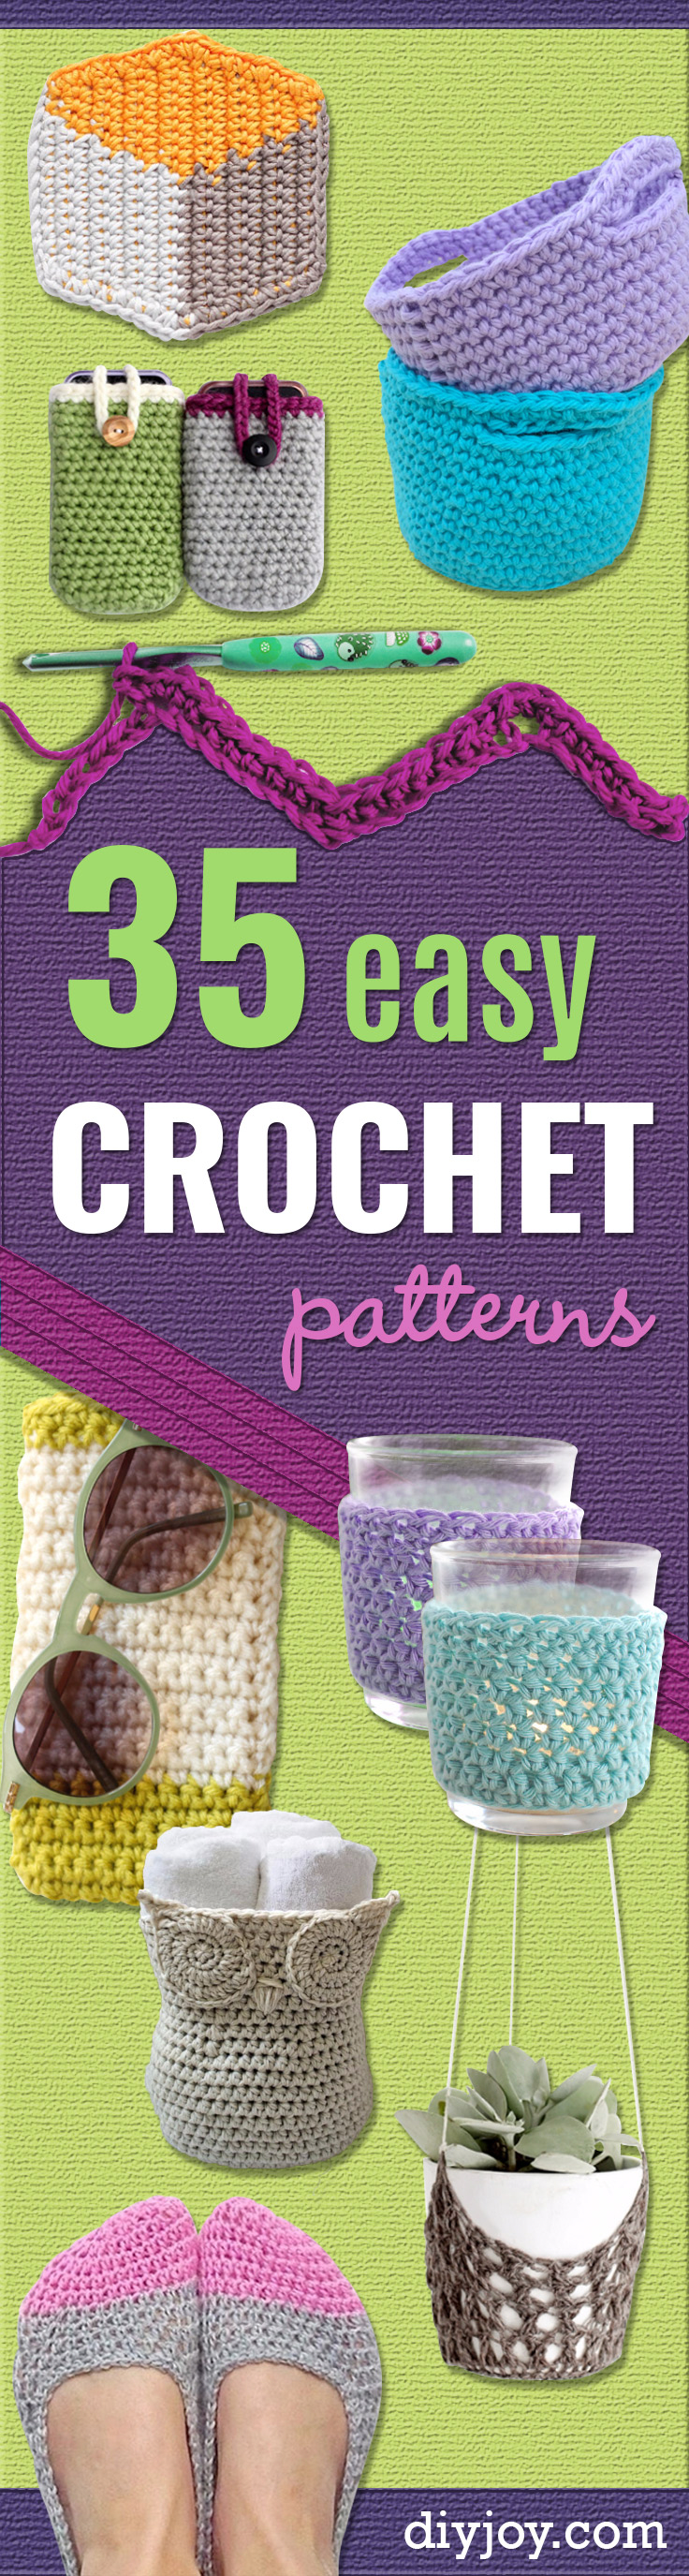 35 Easy Crochet Patterns